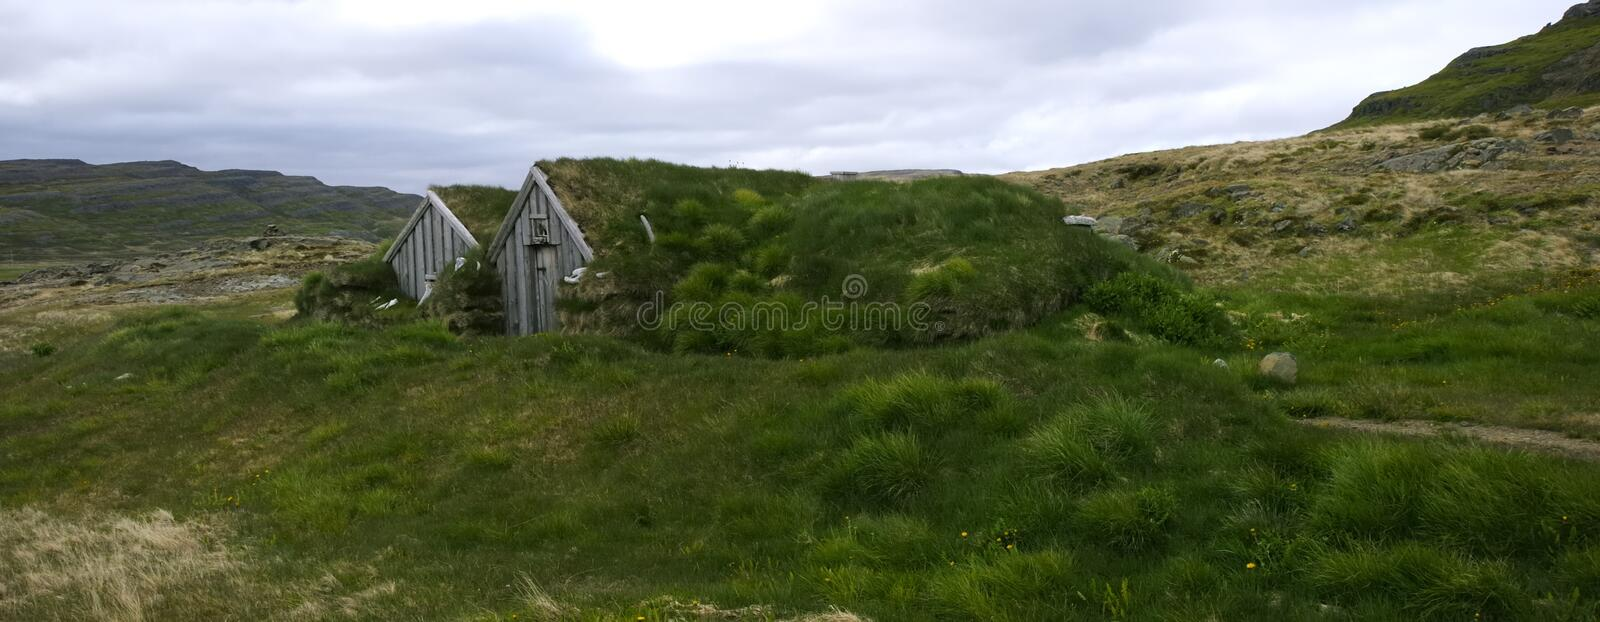 Typical Icelandic Cottage, Sod House. The so called Sorcerer's Cottage is an ancient place and part of the museum in Holmavik, Western Fjords, Iceland royalty free stock photography